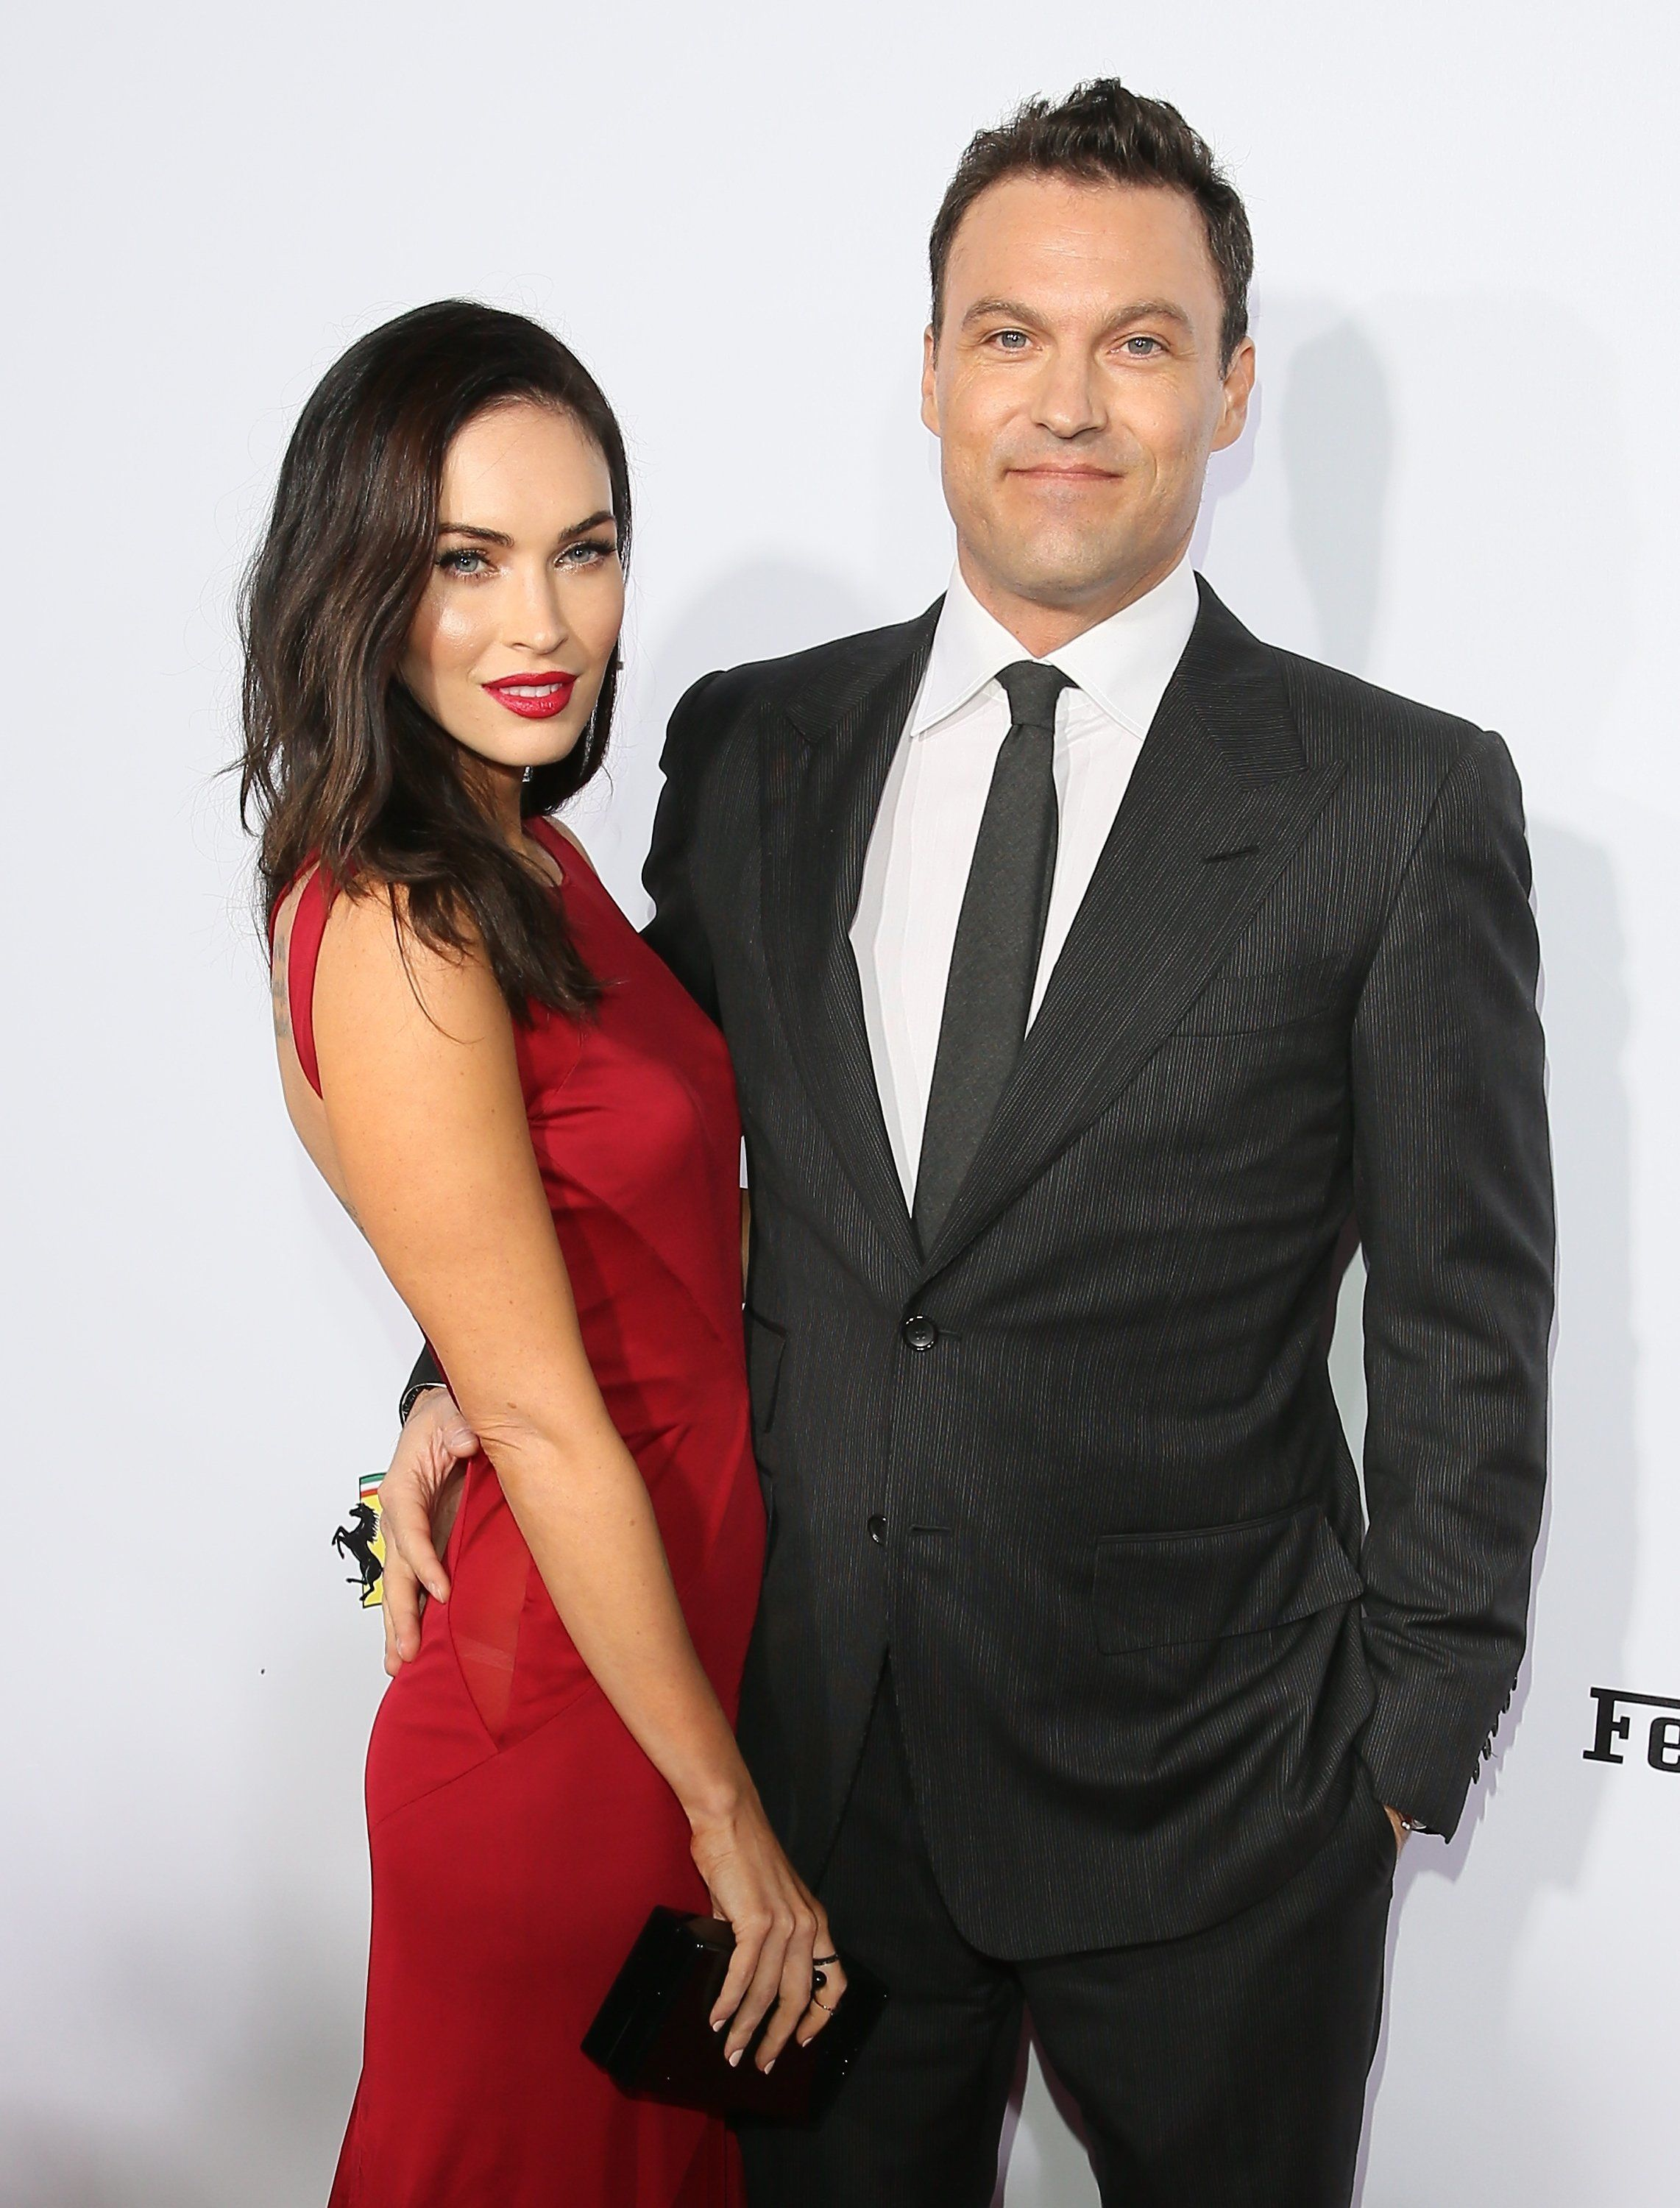 Actors Megan Fox and Brian Austin Green attend Ferrari's 60th Anniversary in the USA Gala at the Wallis Annenberg Center for